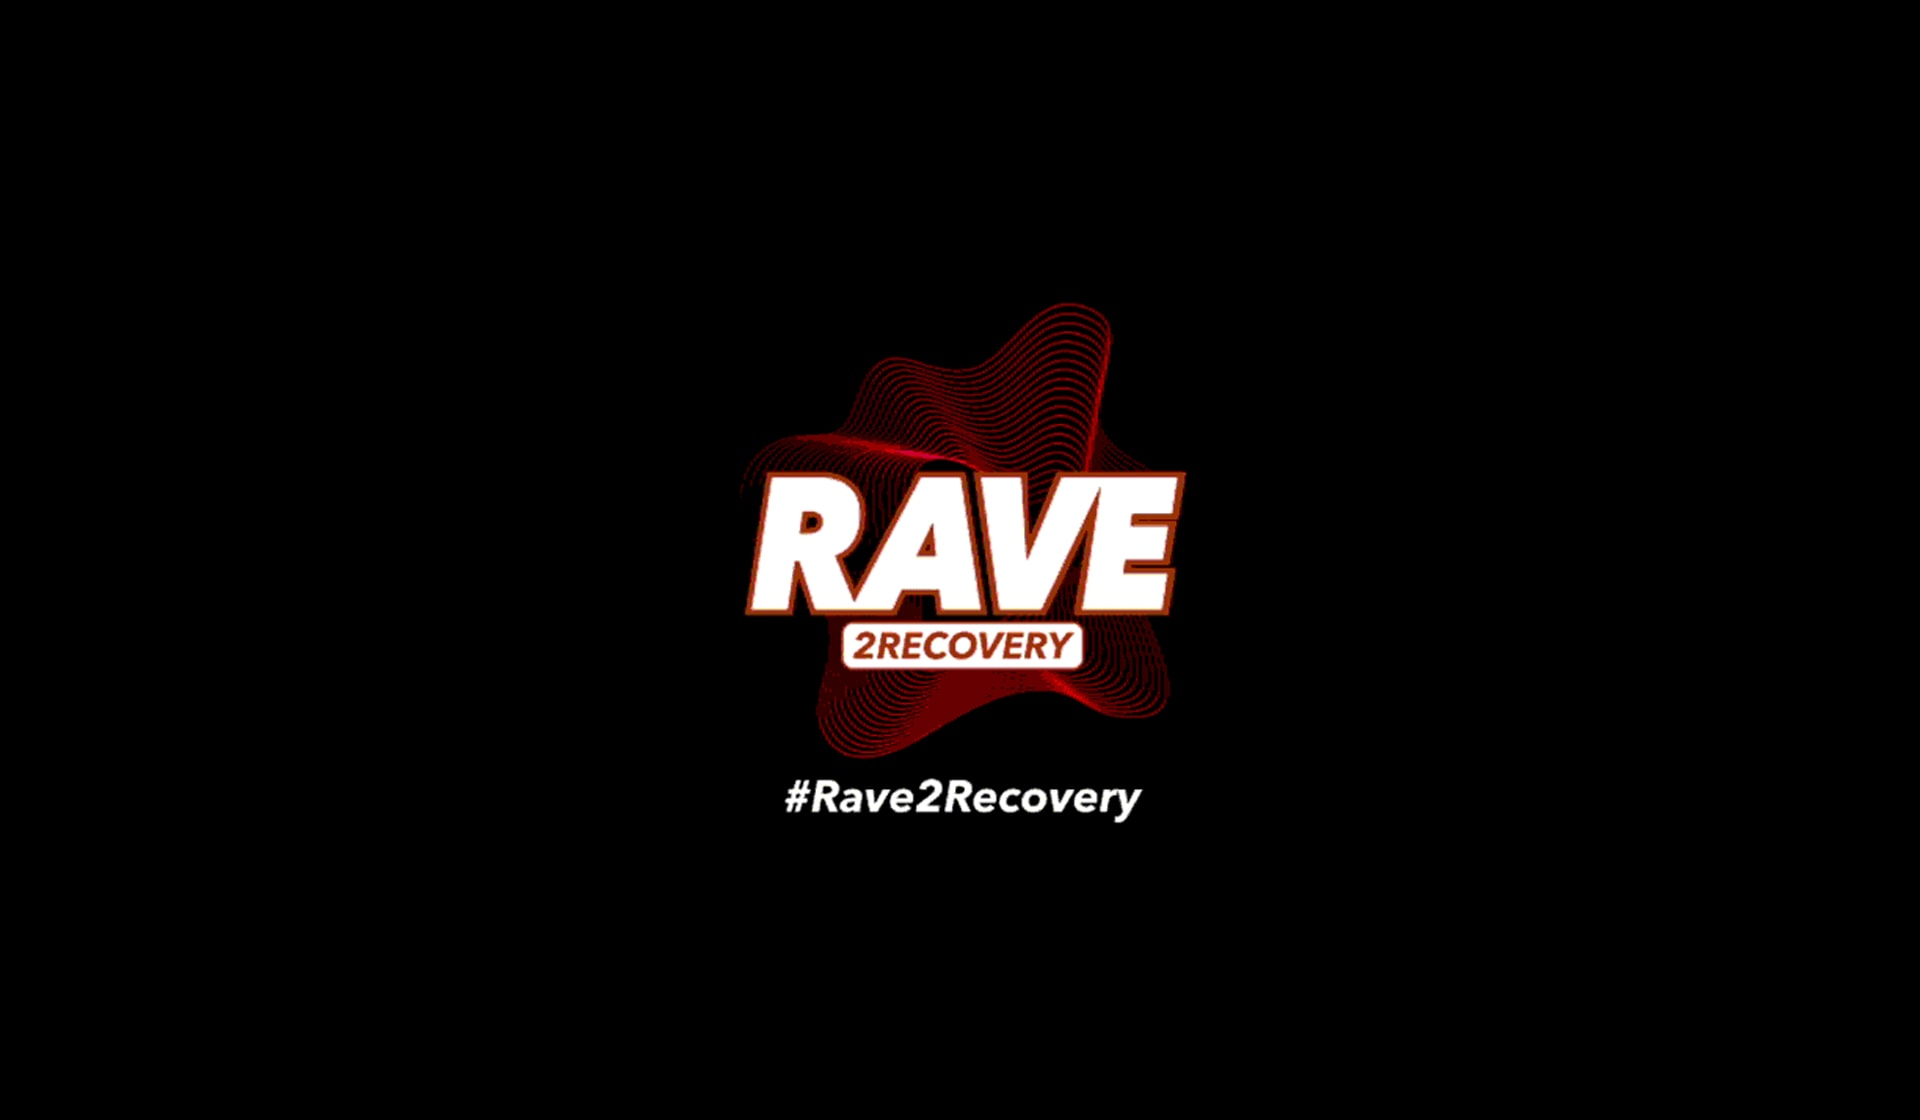 #Rave2Recovery